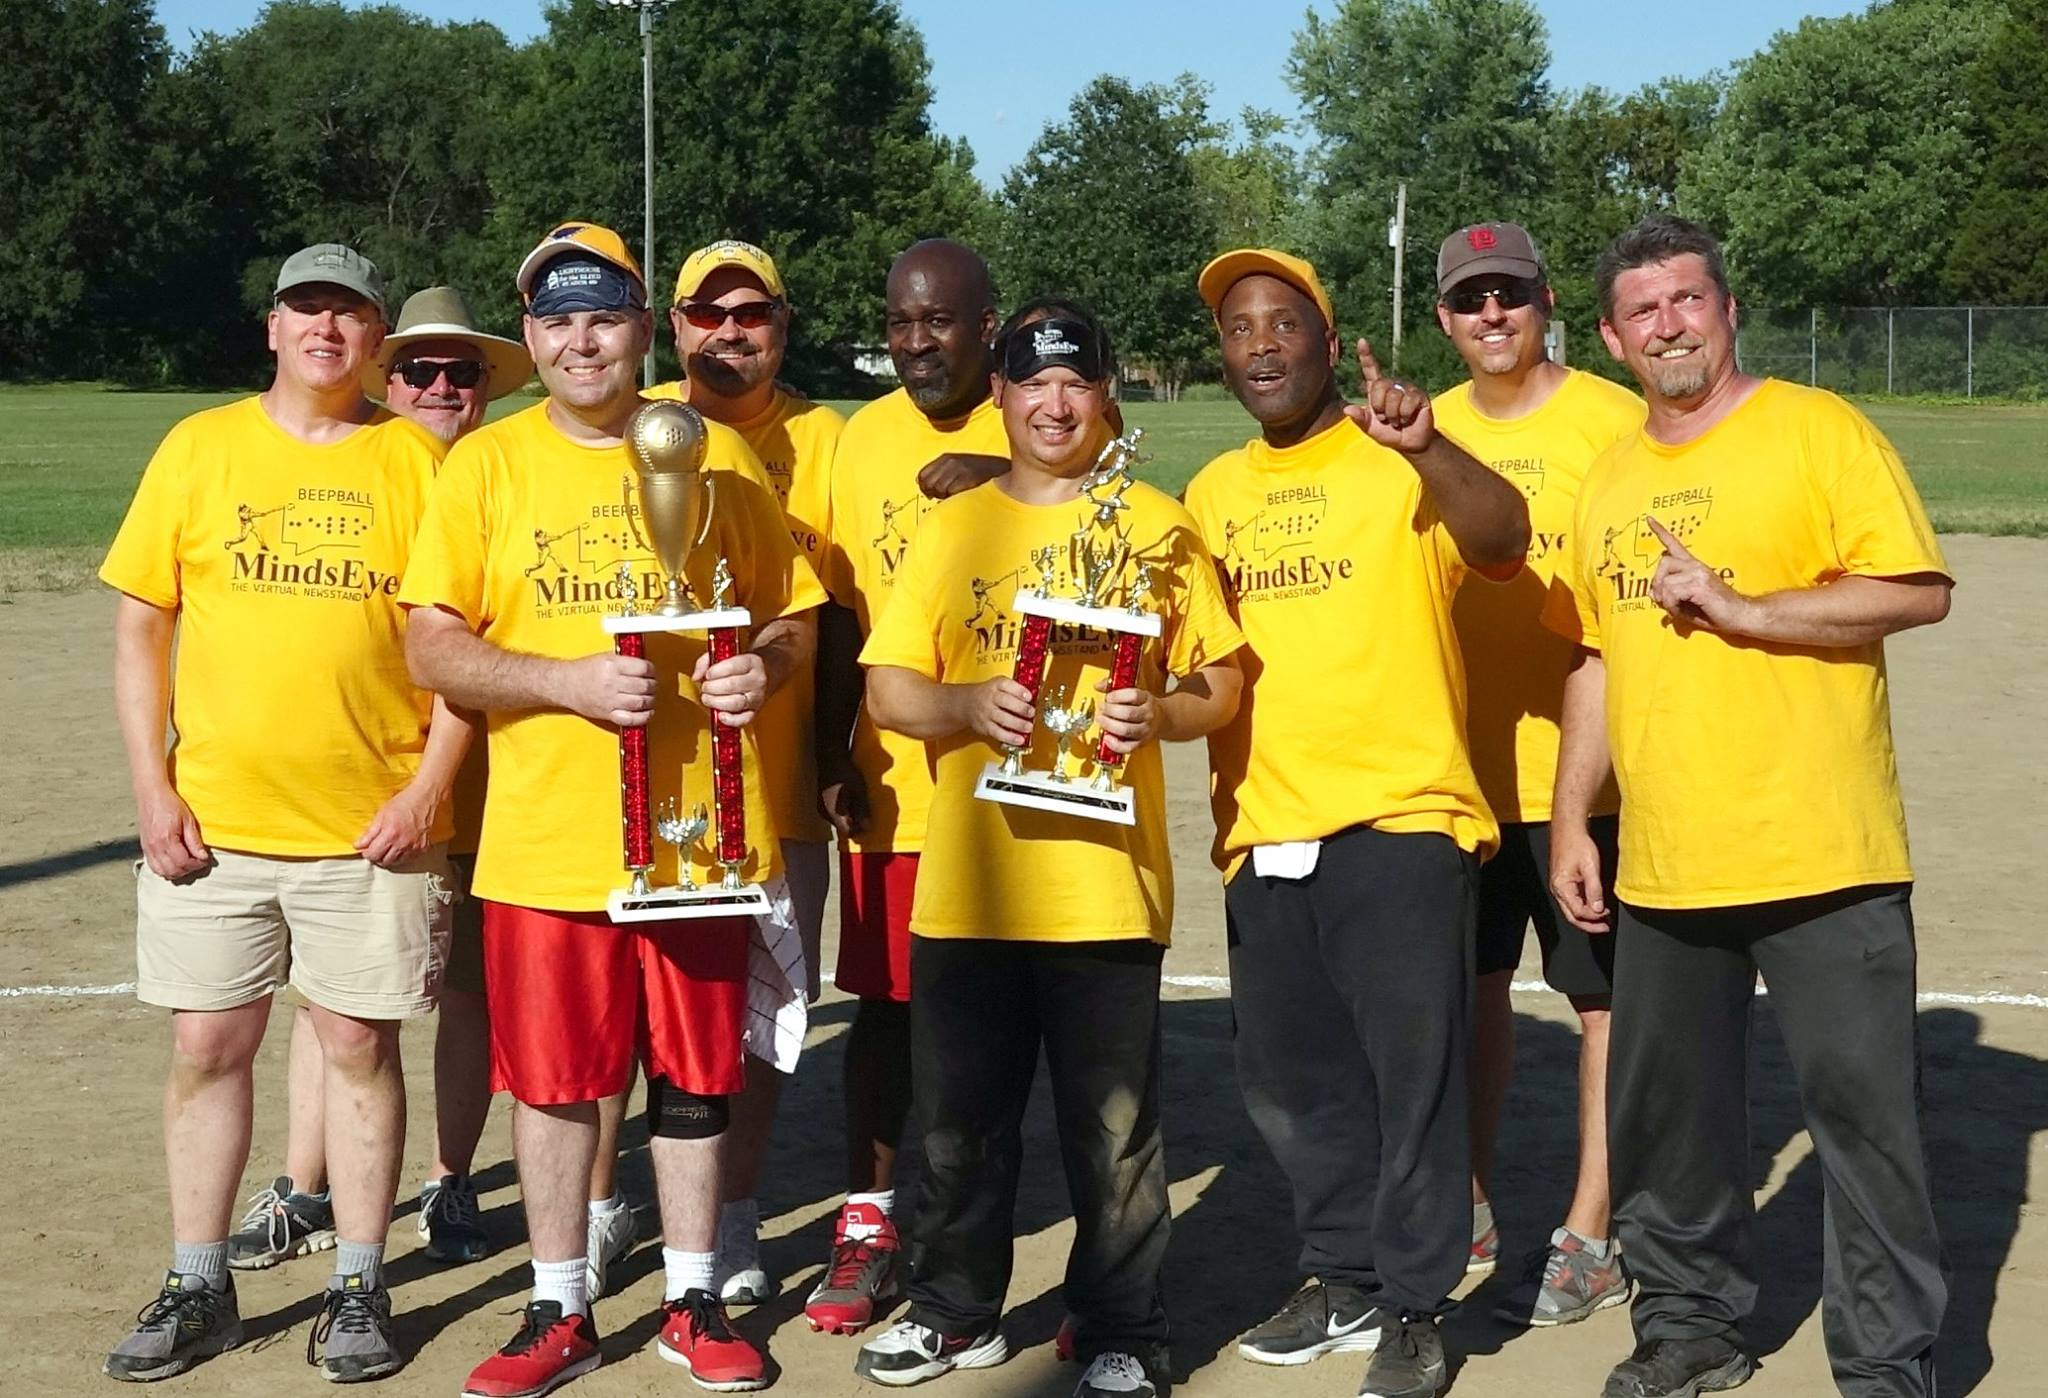 2017 Beepball Champs Lighthouse for the Blind Saint Louis stand together on the baseball field wearing bright yellow MindsEye Beepball T-shirts holding large trophies